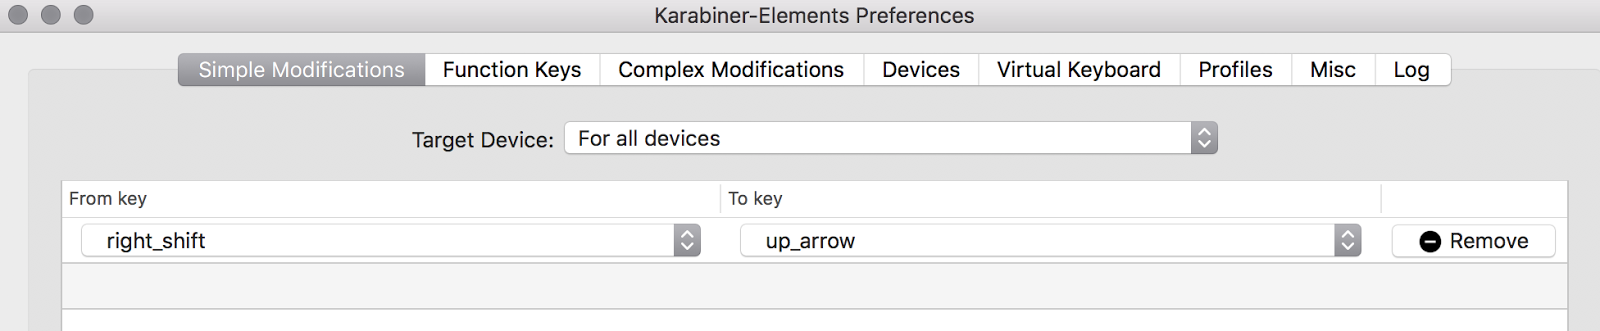 Atucom: Remap Right Shift To Up Arrow OSX